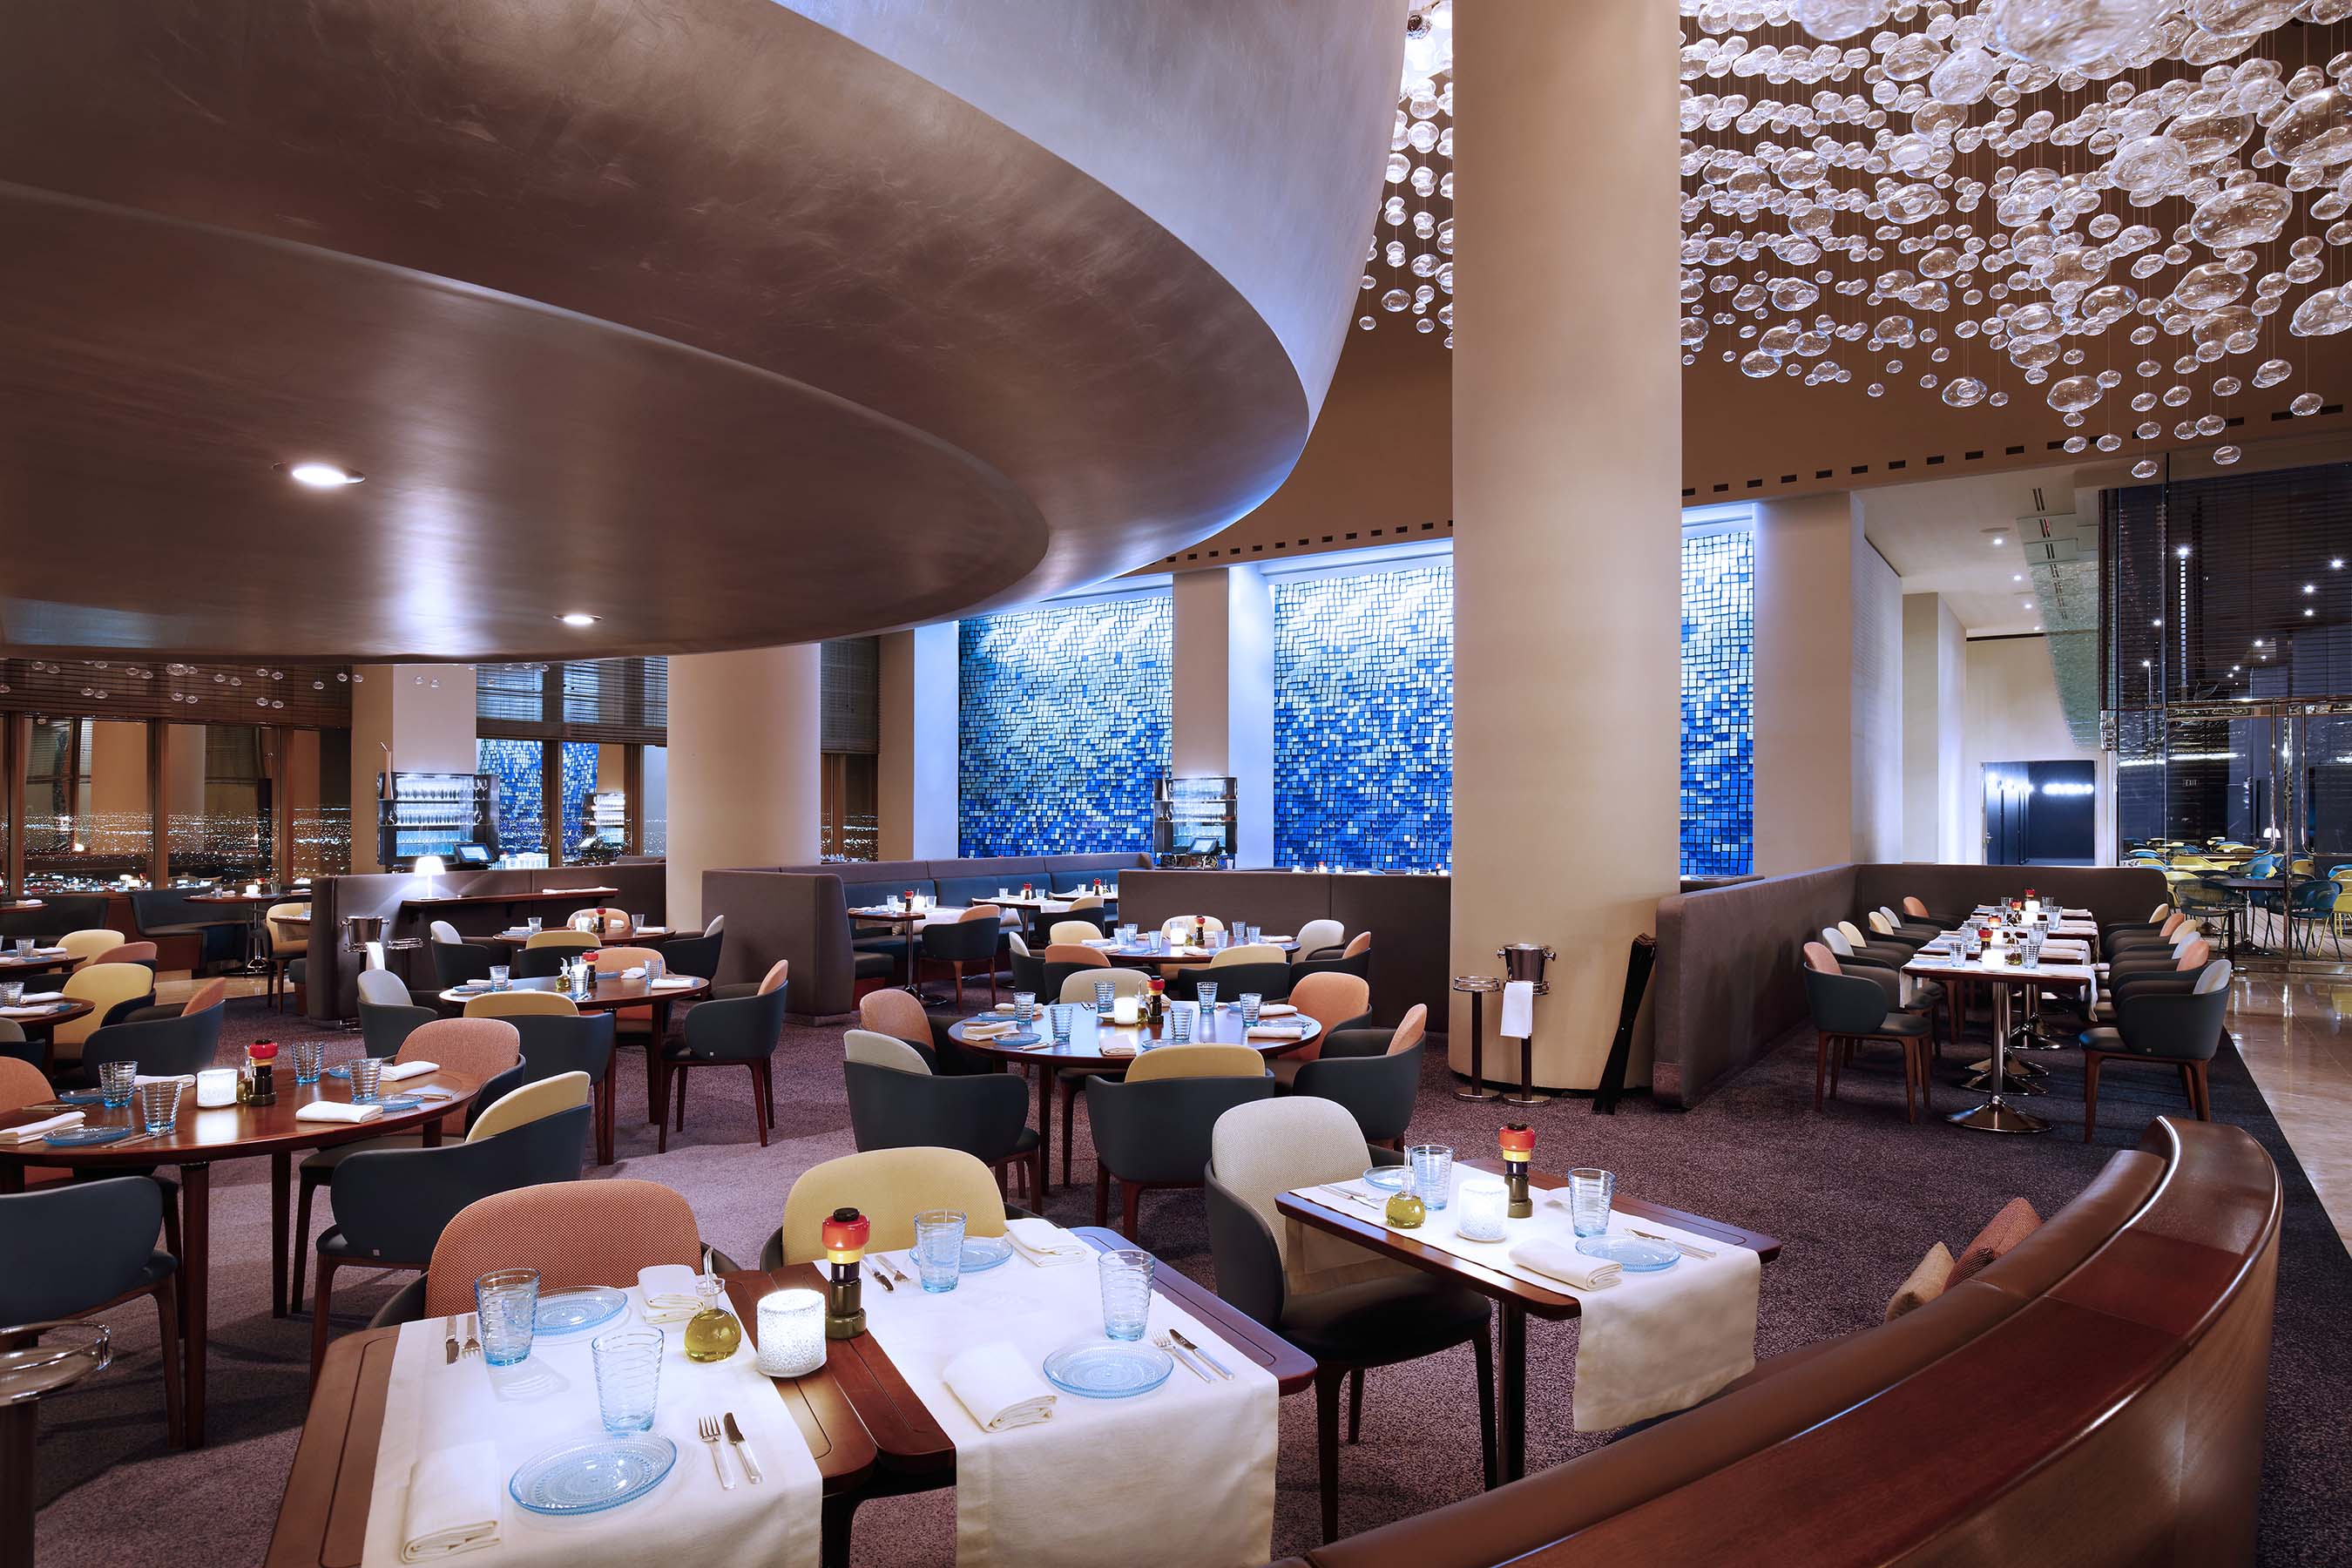 The dining room at Rivea, photo courtesy of The Delano Las Vegas.